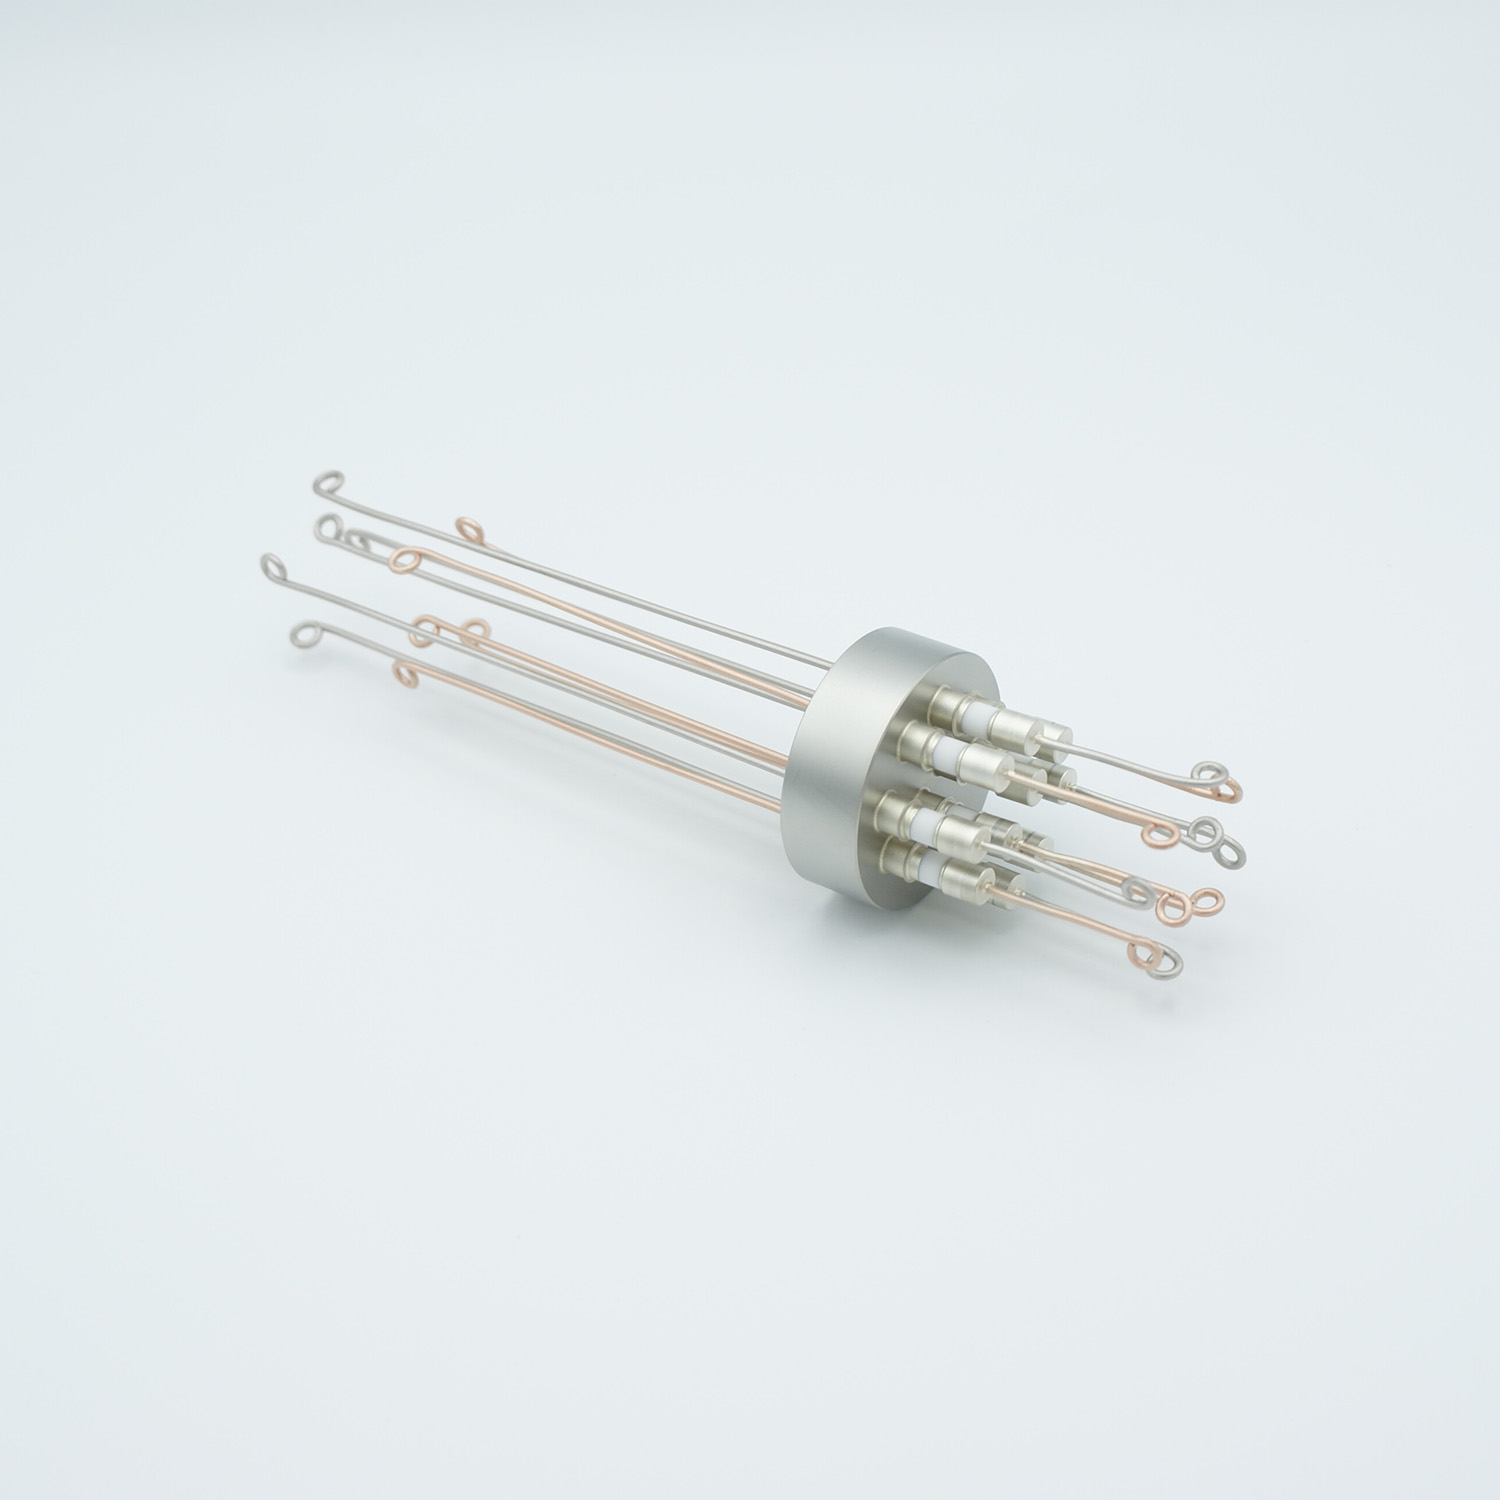 5 pair Thermocouple type-T feedthrough with both side connectors included, weld fitting